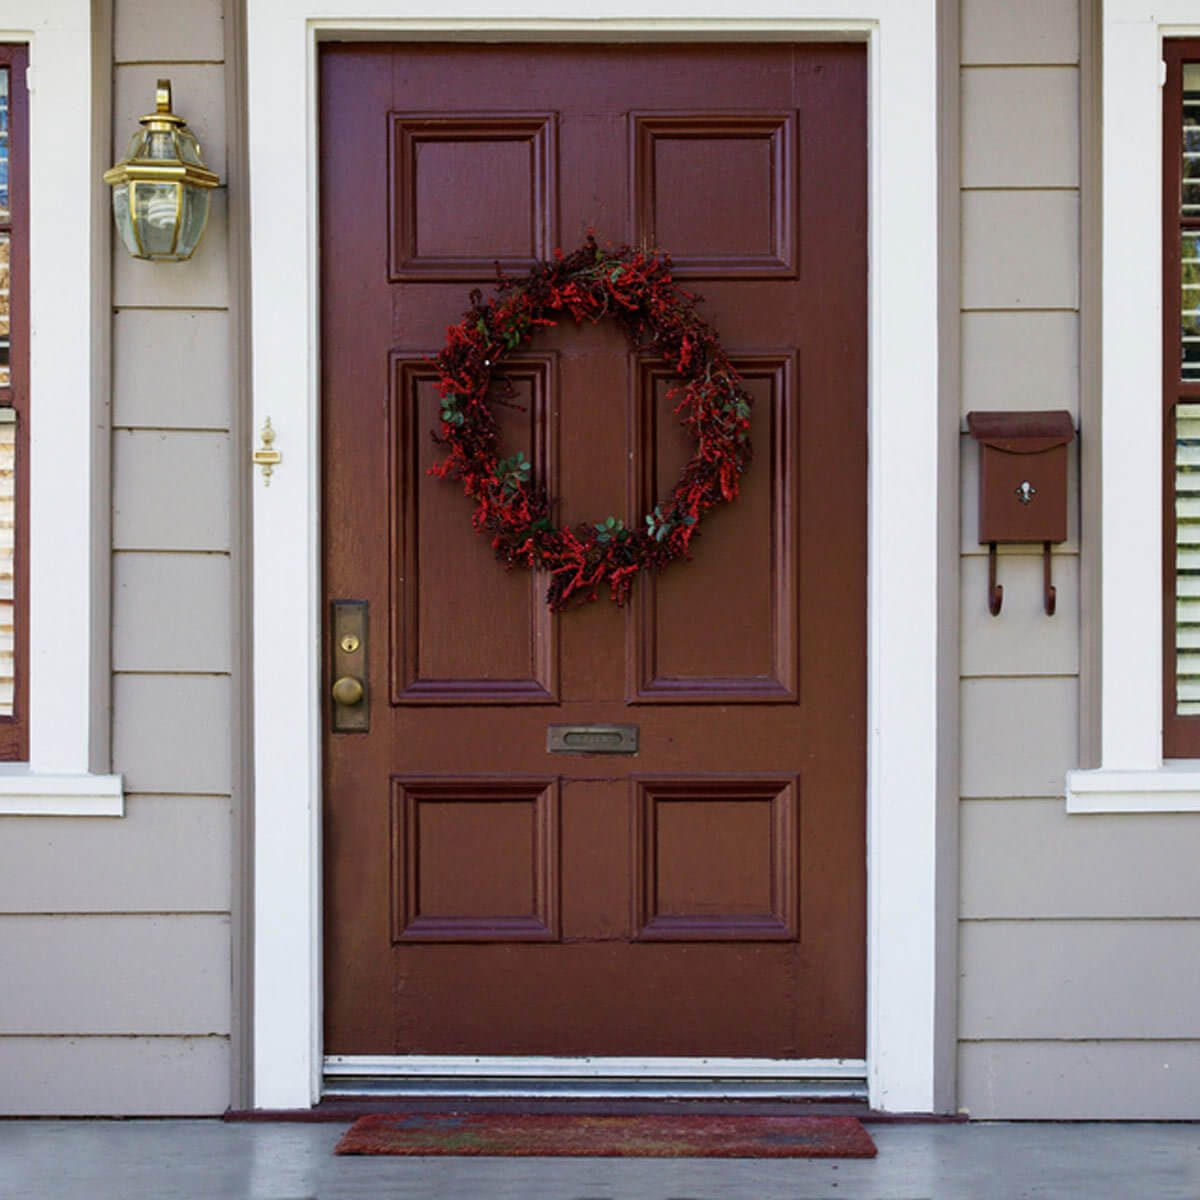 Burgundy Front Door with Wreath